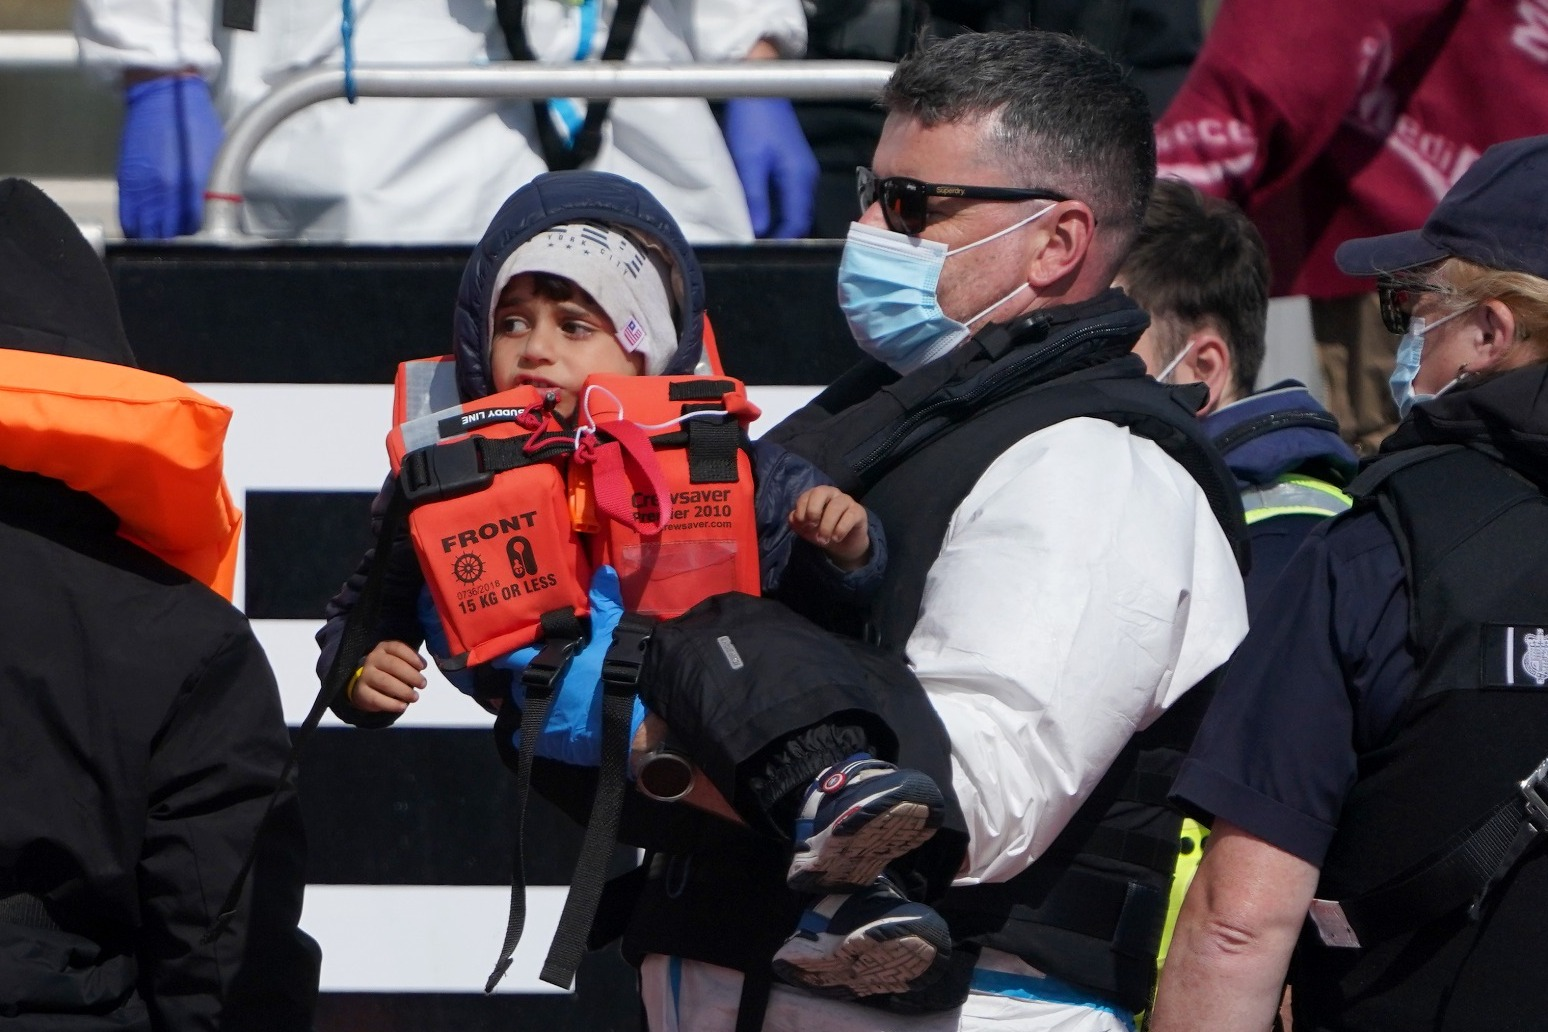 UK would not breach international law to tackle migrant crossings